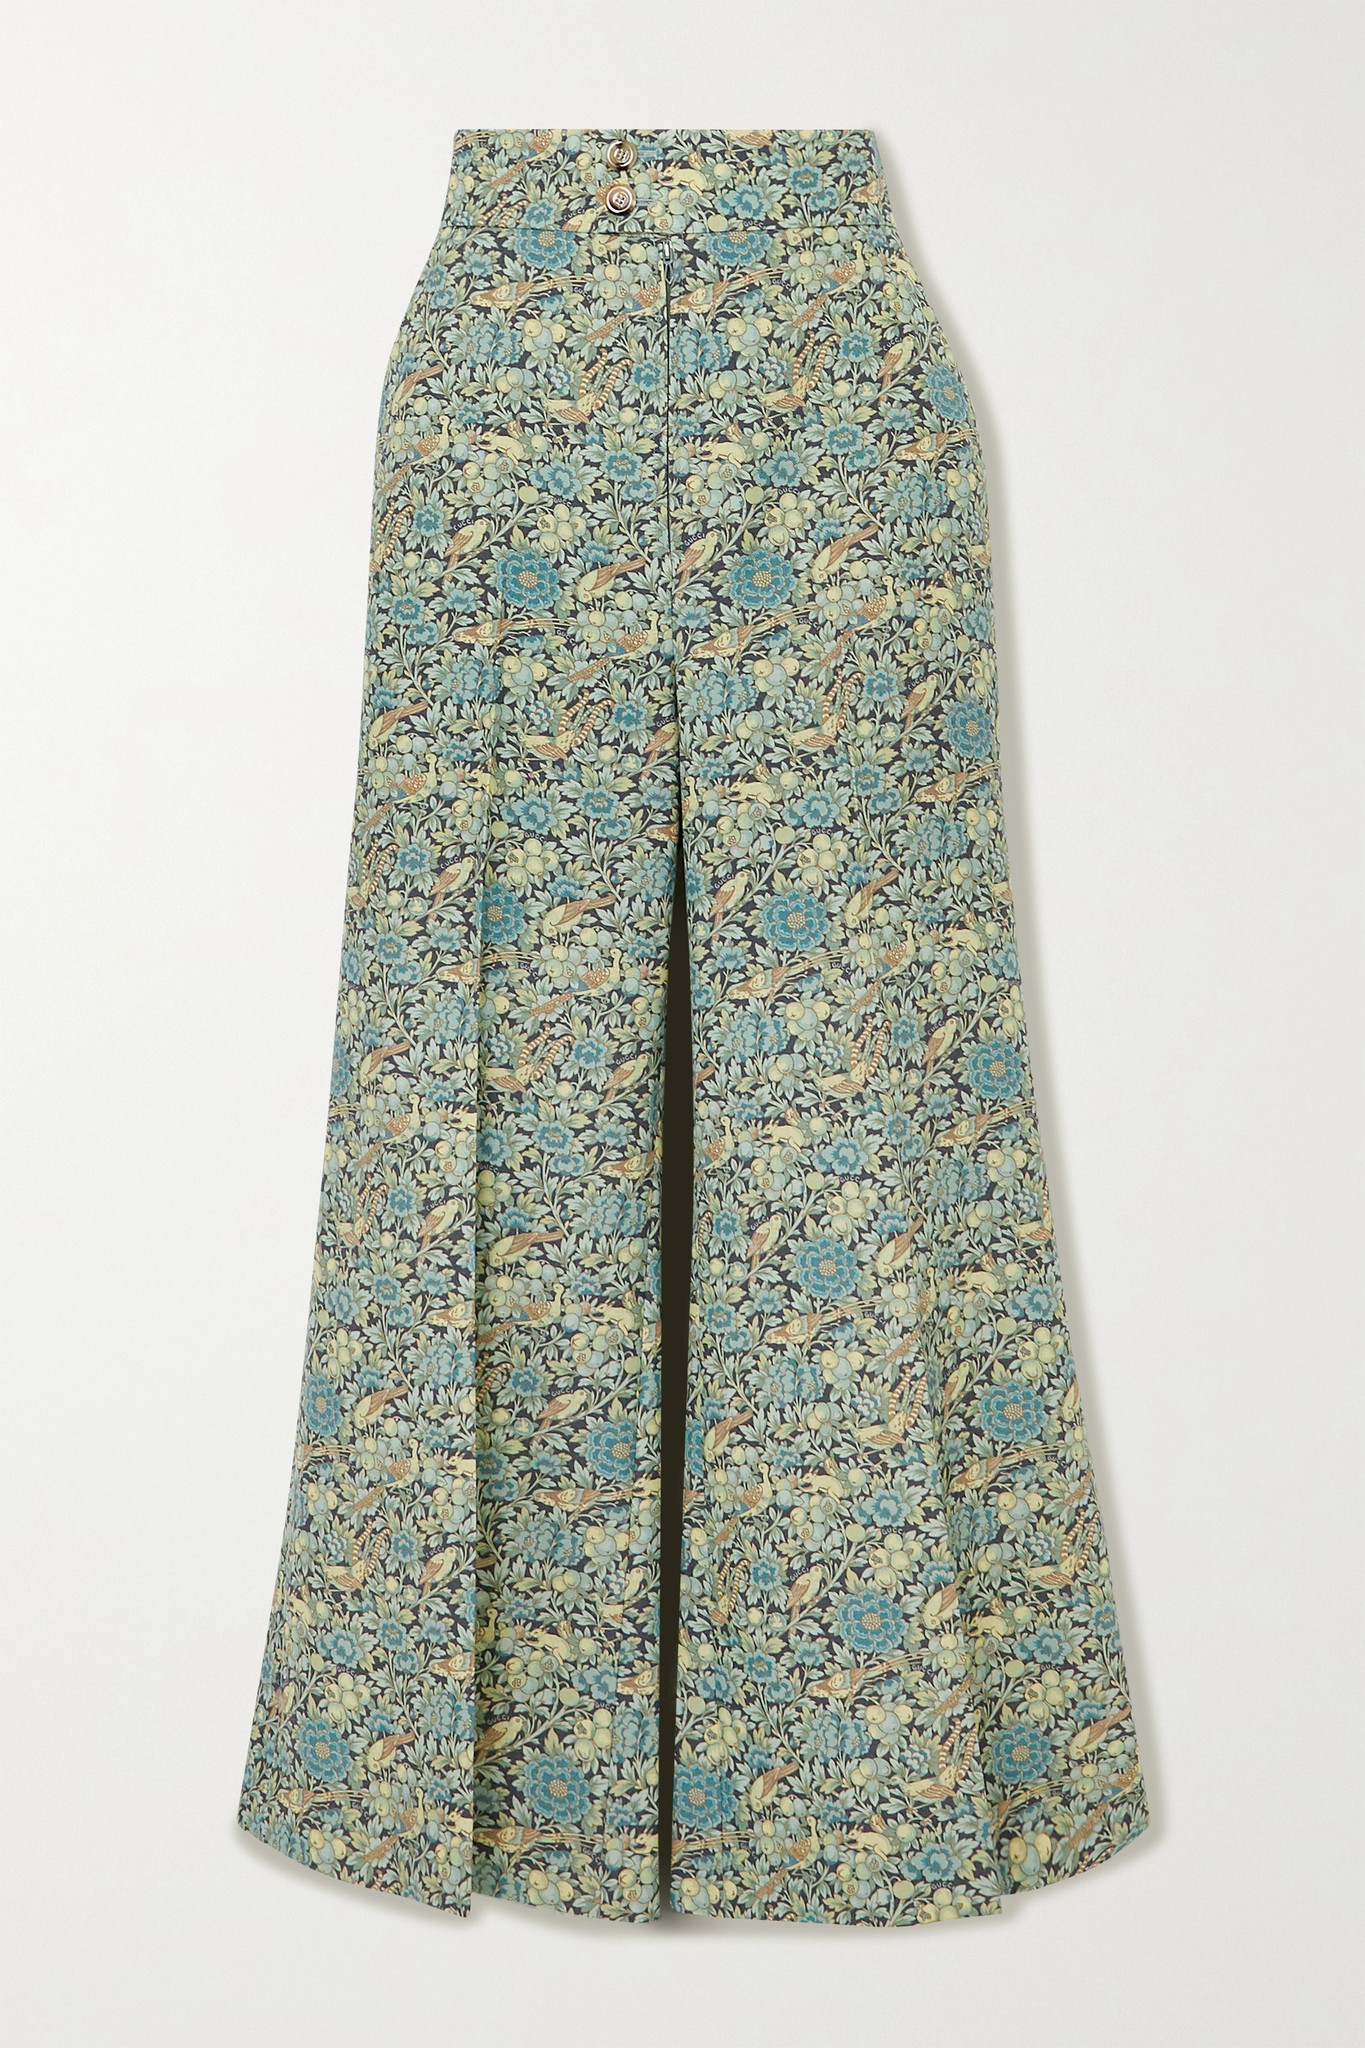 GUCCI - Cropped Floral-print Wool And Mohair-blend Wide-leg Pants - Green - IT42